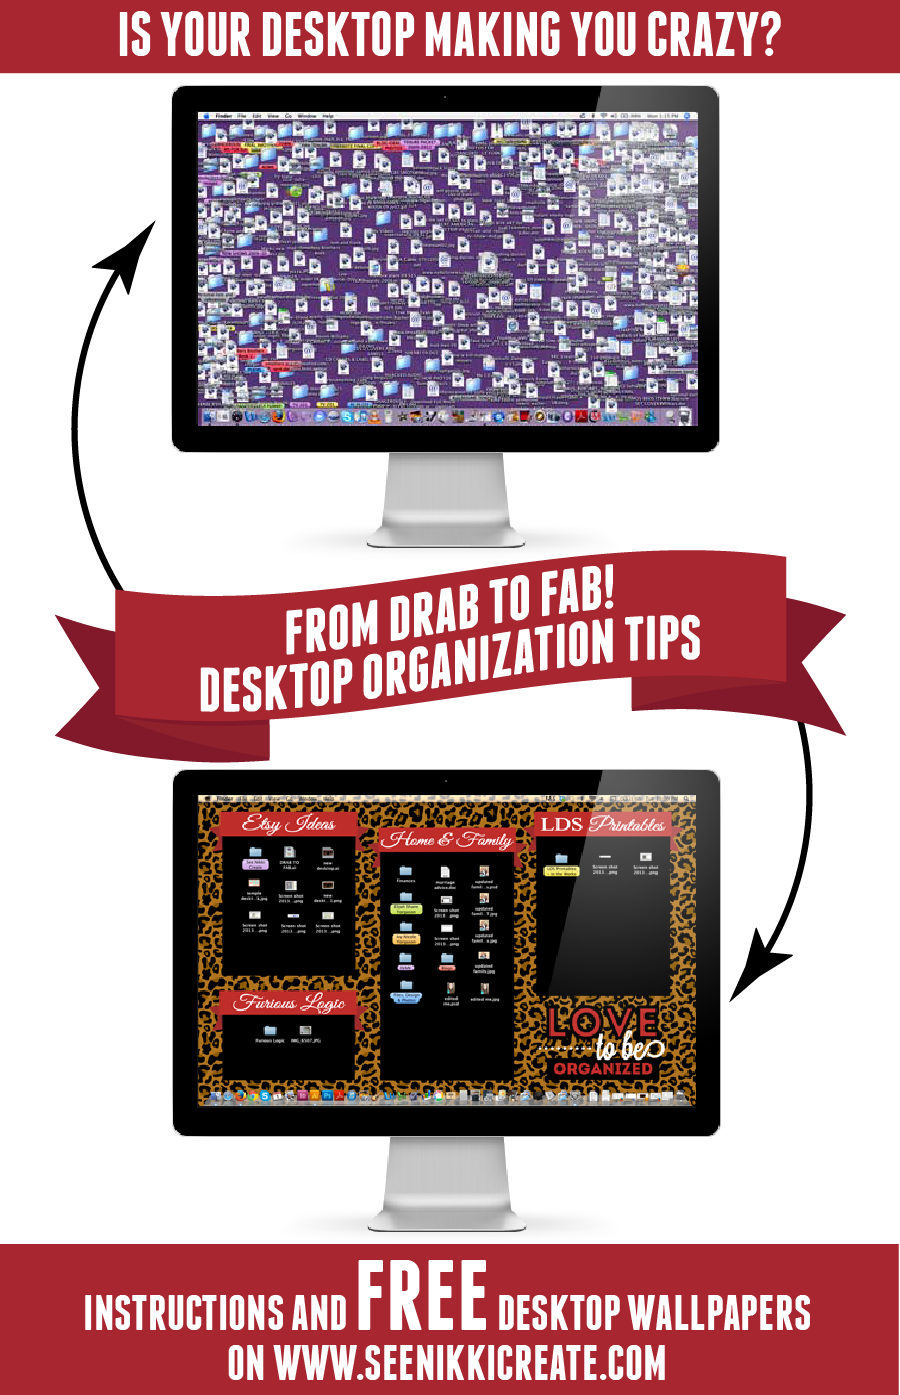 Free Desktop Wallpapers and instructions on how to organize your desktop! This is great chance you have to learn how to get organized on your most imp...